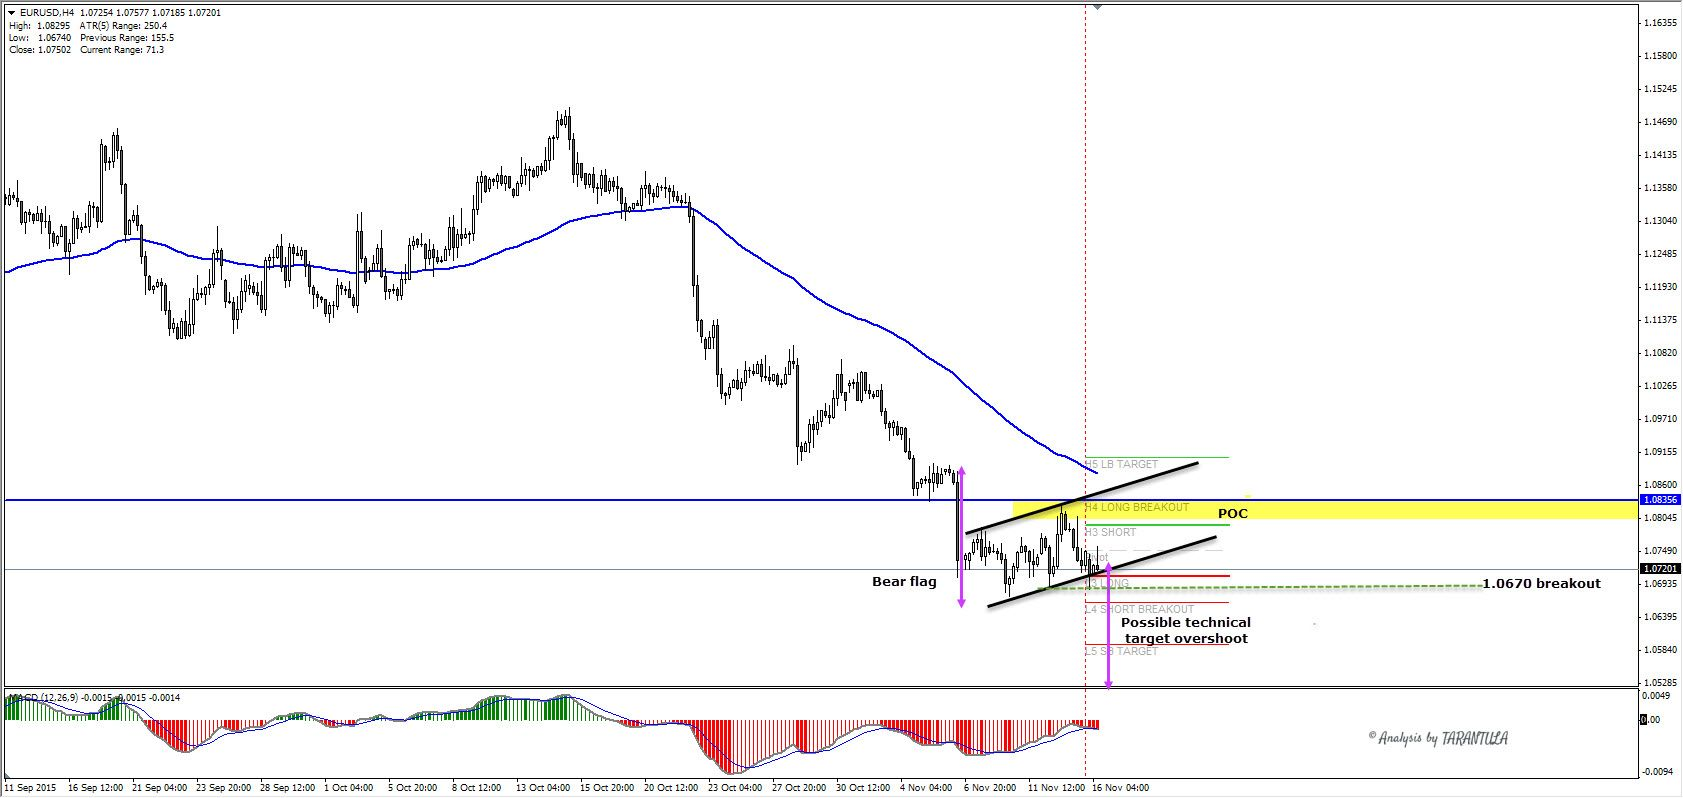 Eurusd Possible Technical Target Overshoot  Technical Analysis